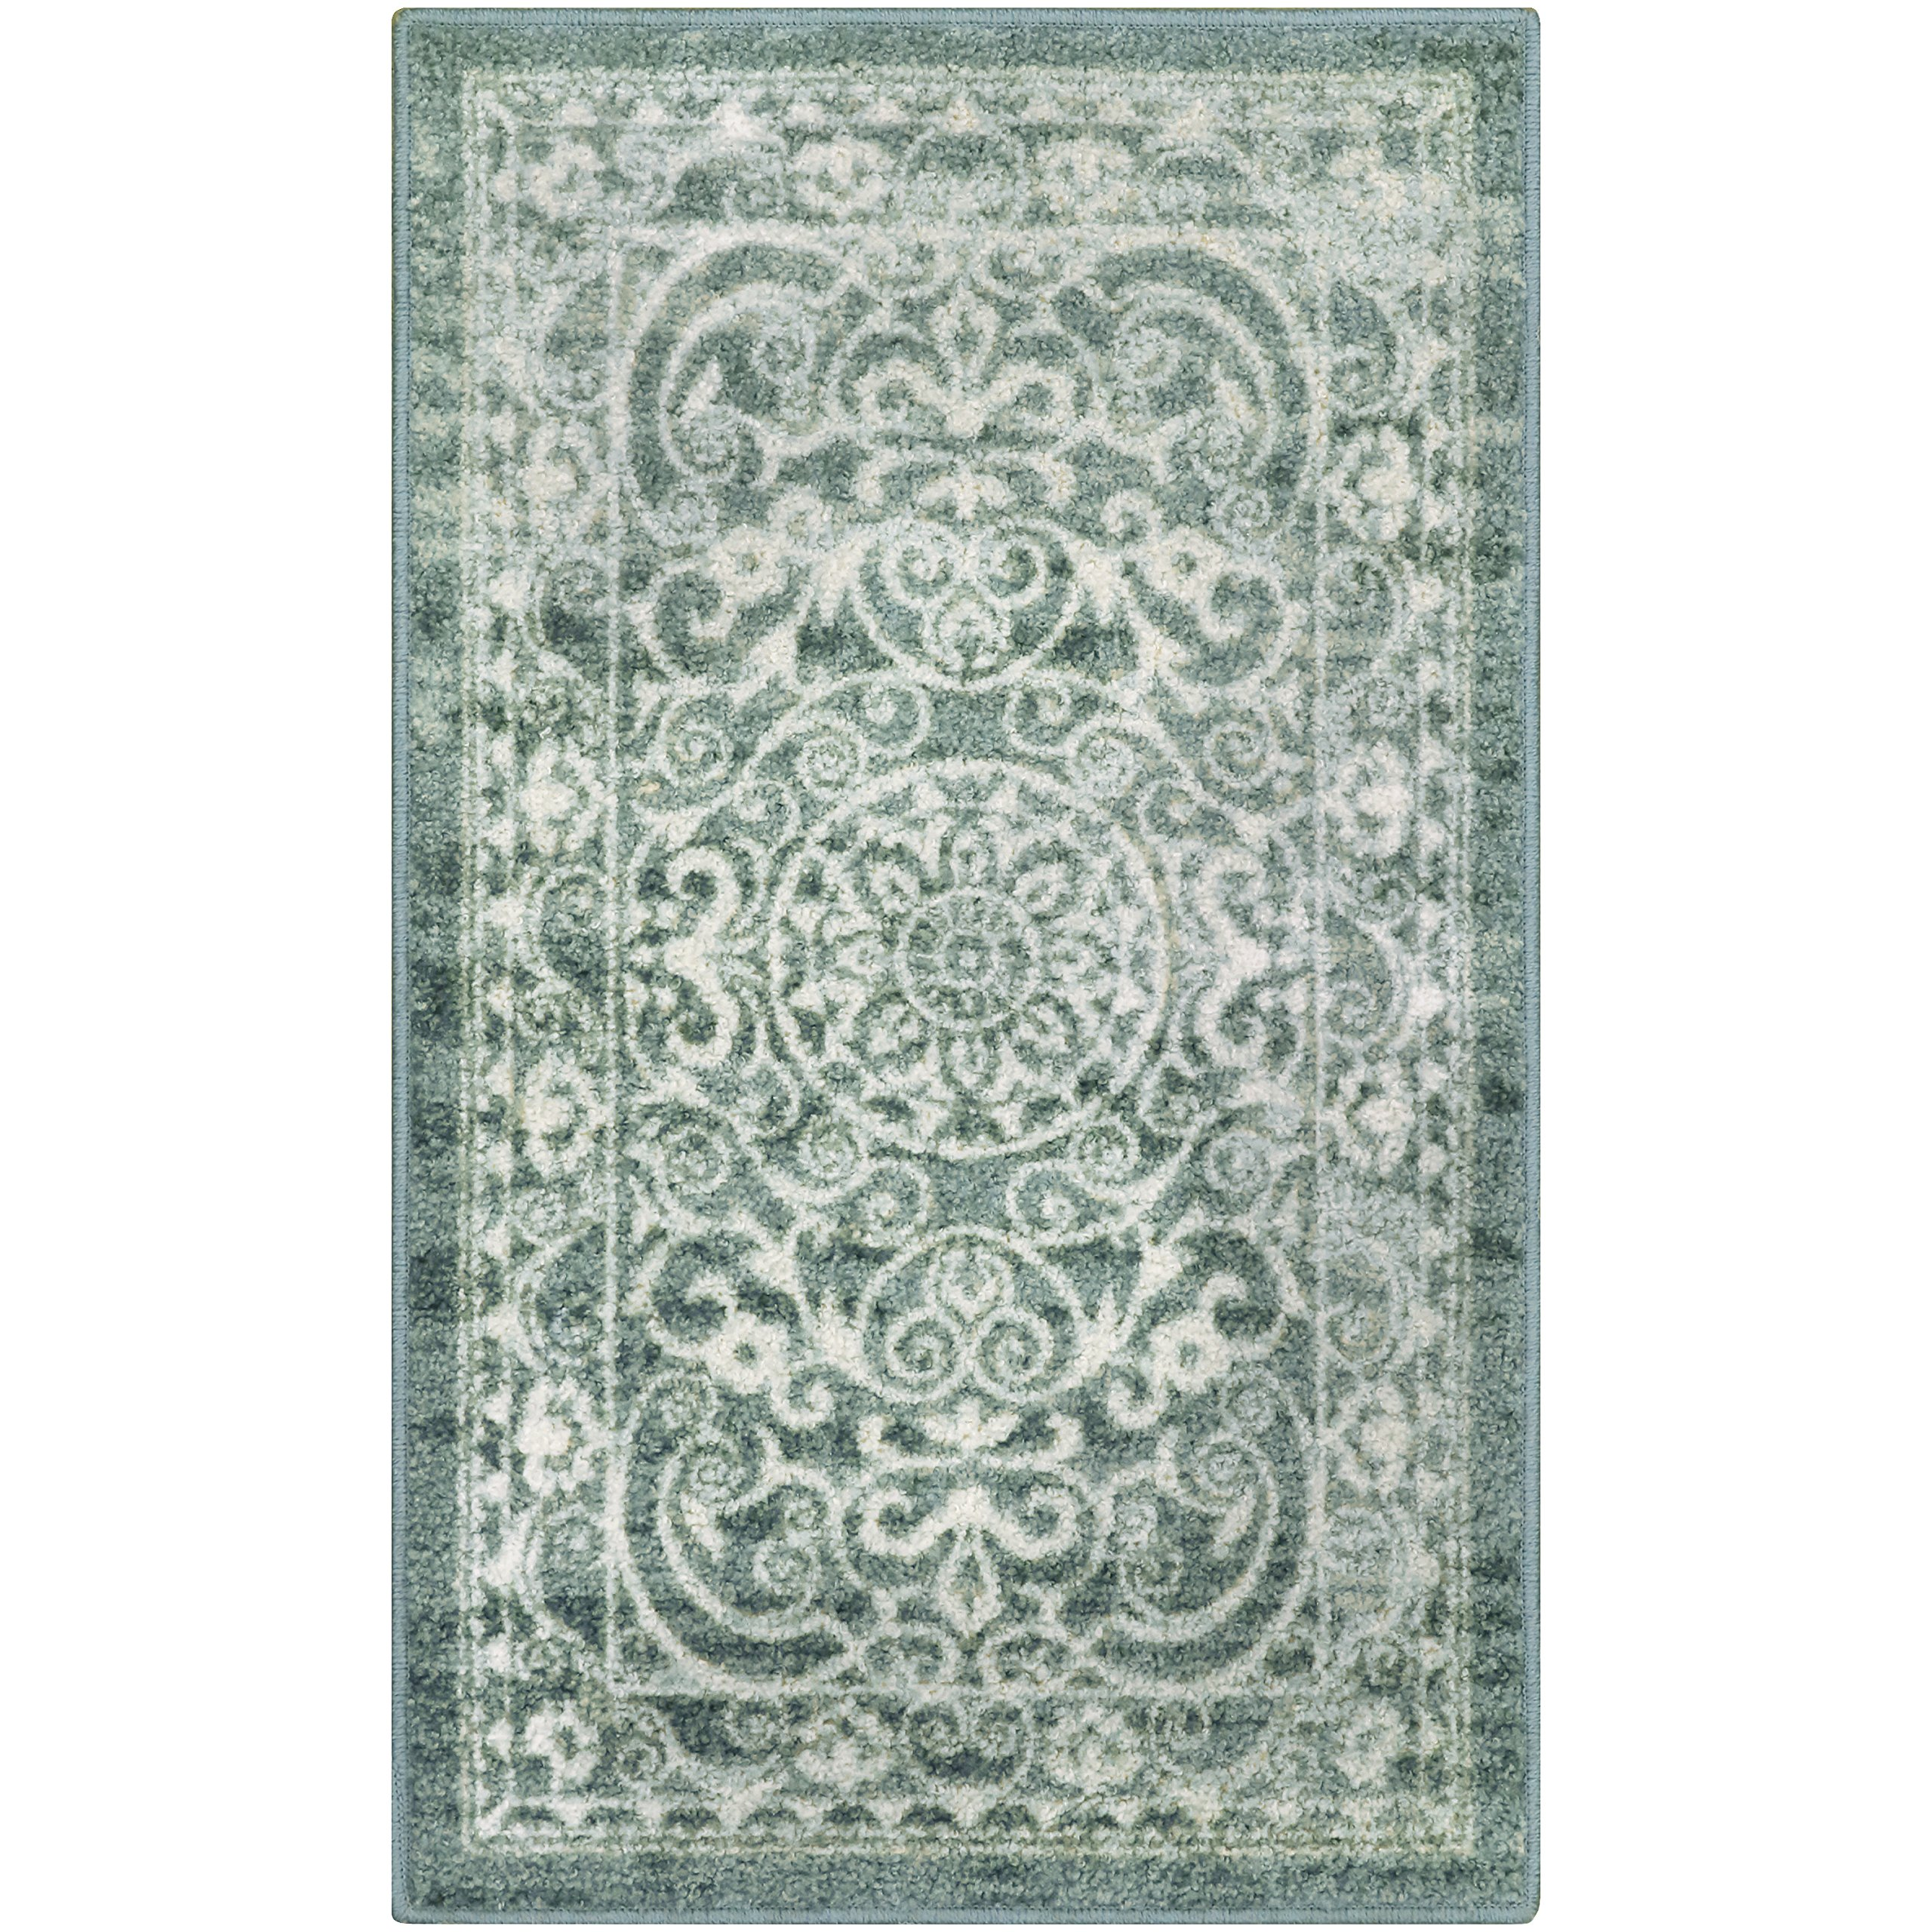 Maples Rugs Kitchen Rug - Pelham 2'6 x 3'10 Non Skid Small Accent Throw Rugs [Made in USA] for Entryway and Bedroom, Light Spa